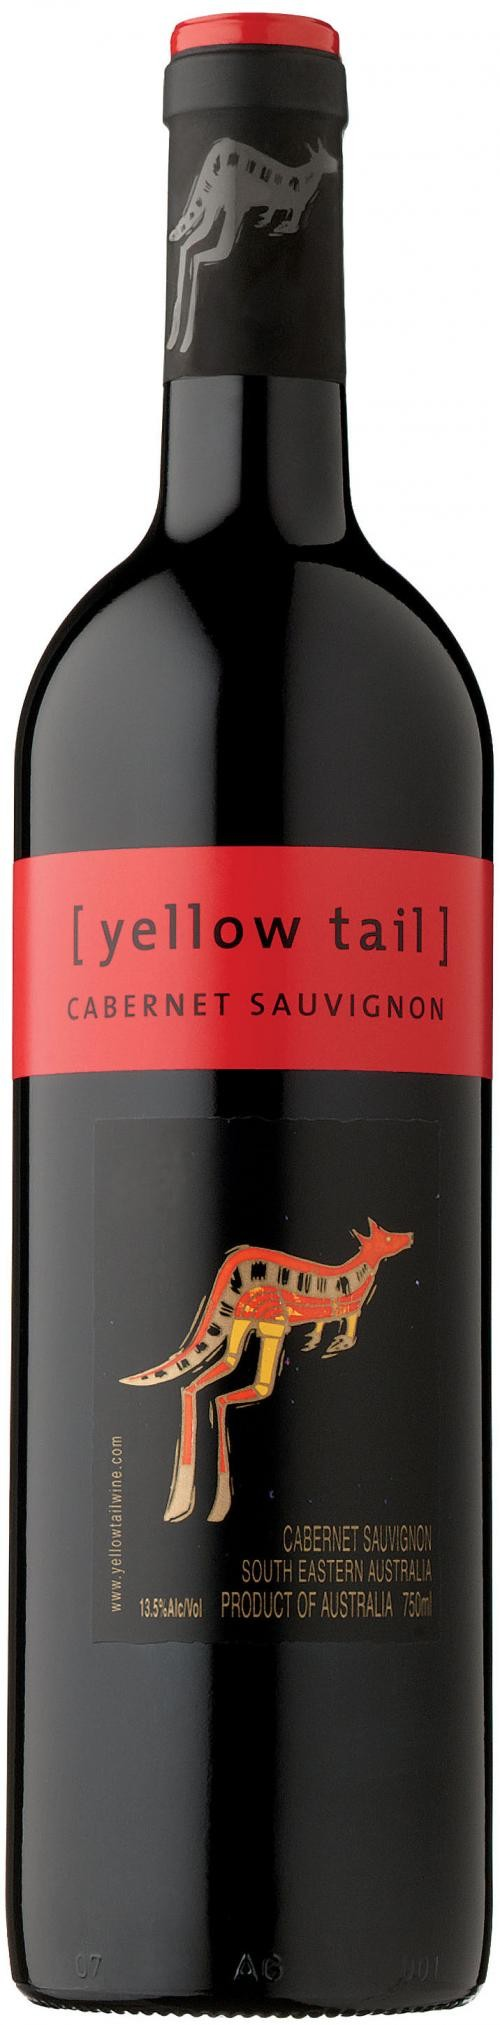 YELLOW TAIL CABERNET SAUVIGNON for only 799 in online